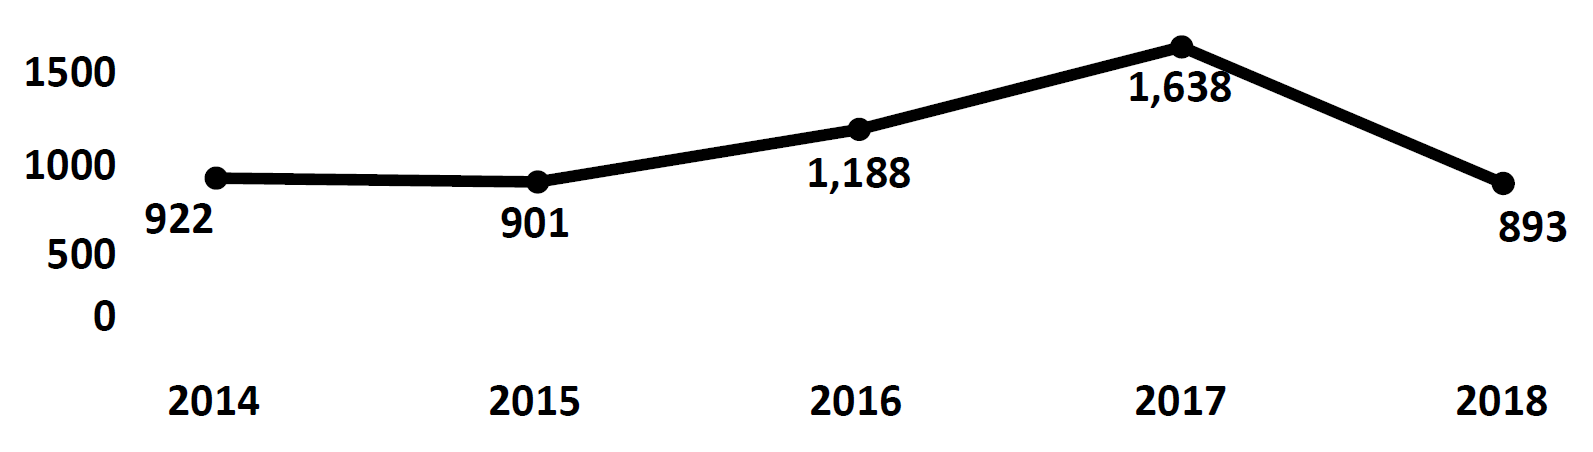 Graph of Do Not Call complaints recorded in Puerto Rico from fiscal year 2014 to fiscal year 2018. In 2014 there were 922 complaints filed, which dipped then rose to peak at 1,638 in 2017. In 2018 there were 893 complaints filed, fewer than 2017.